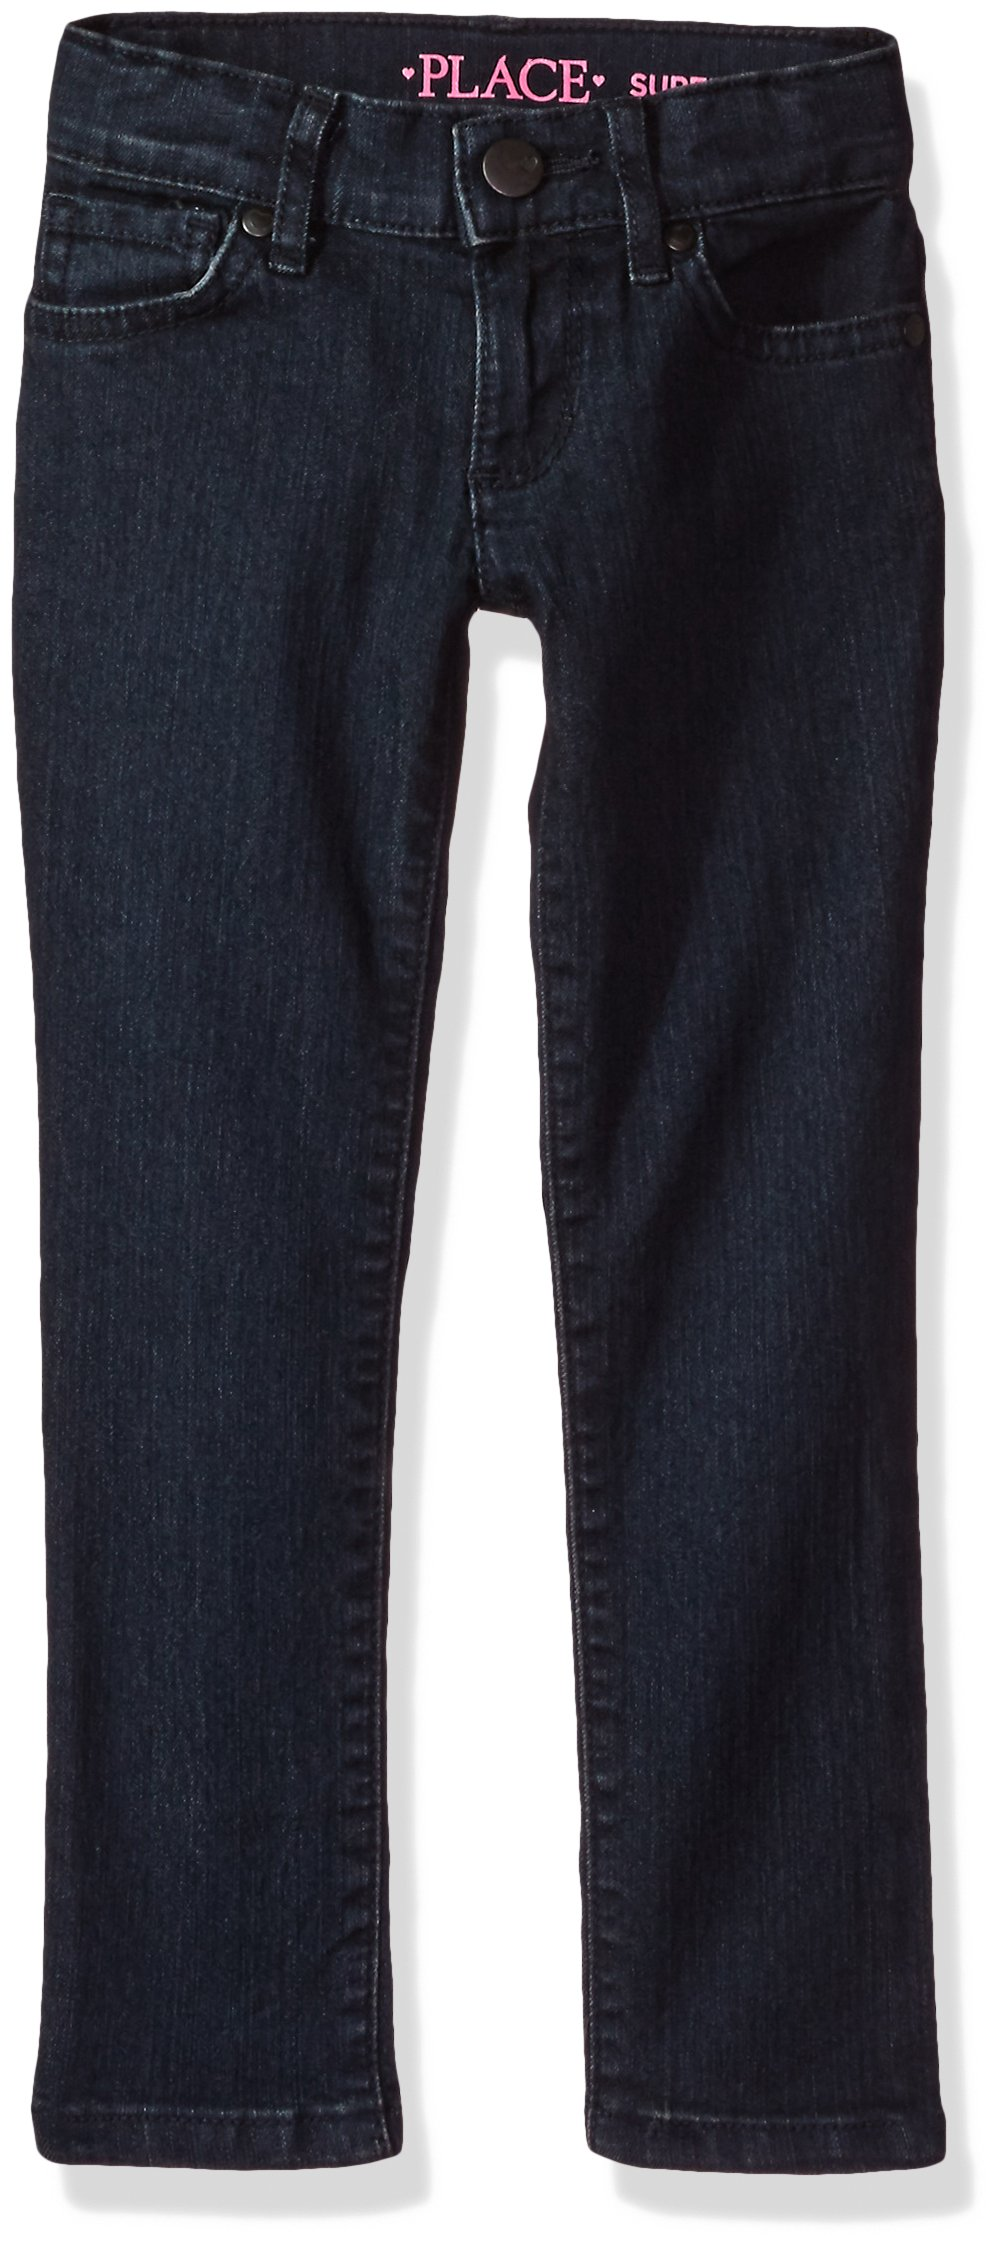 The Children's Place Girls Plus Size Skinny